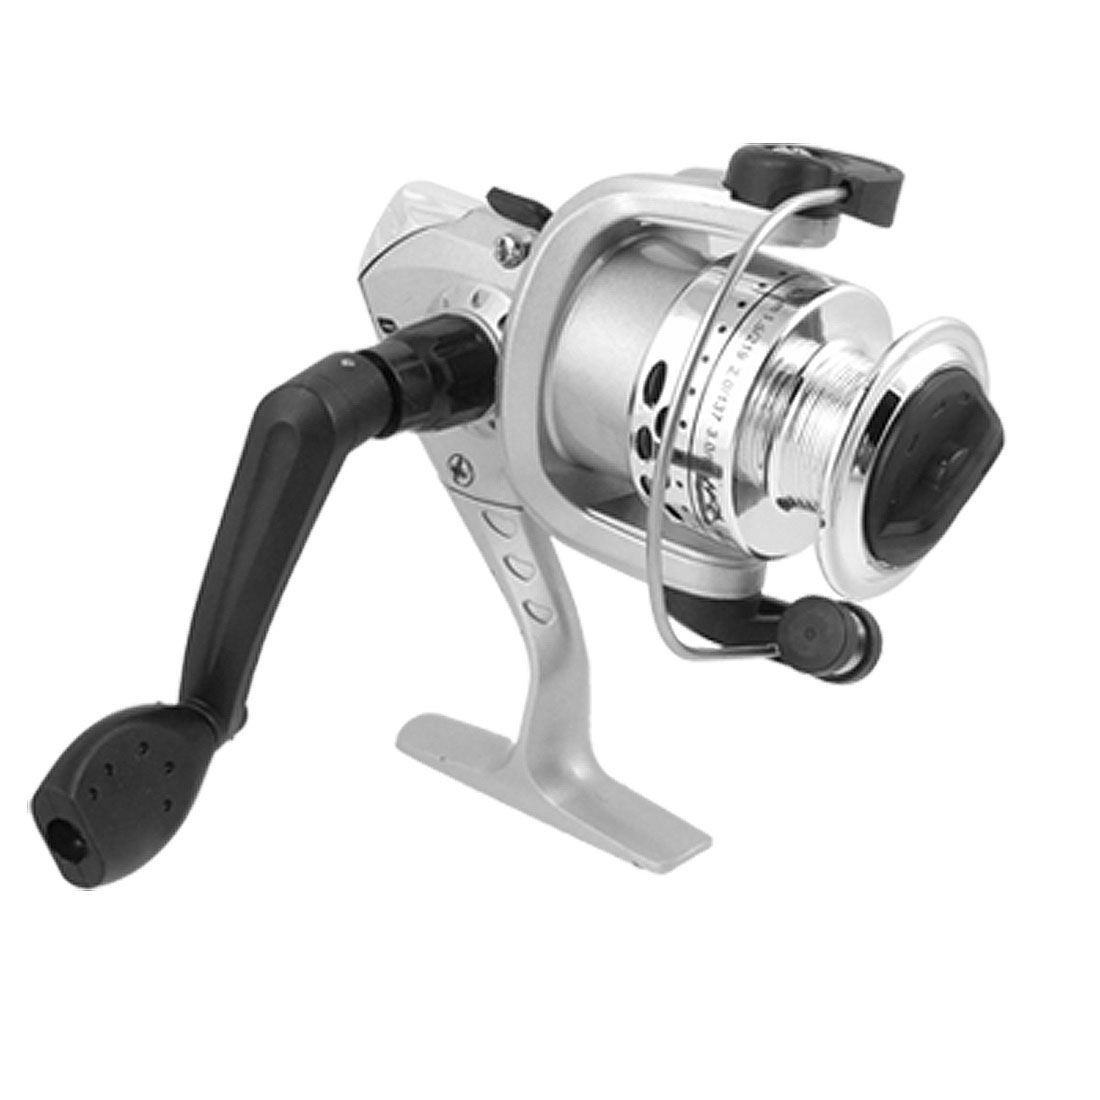 Ratio 5.2:1 Fishing Spinning Casting Gear Reel Silvery Black